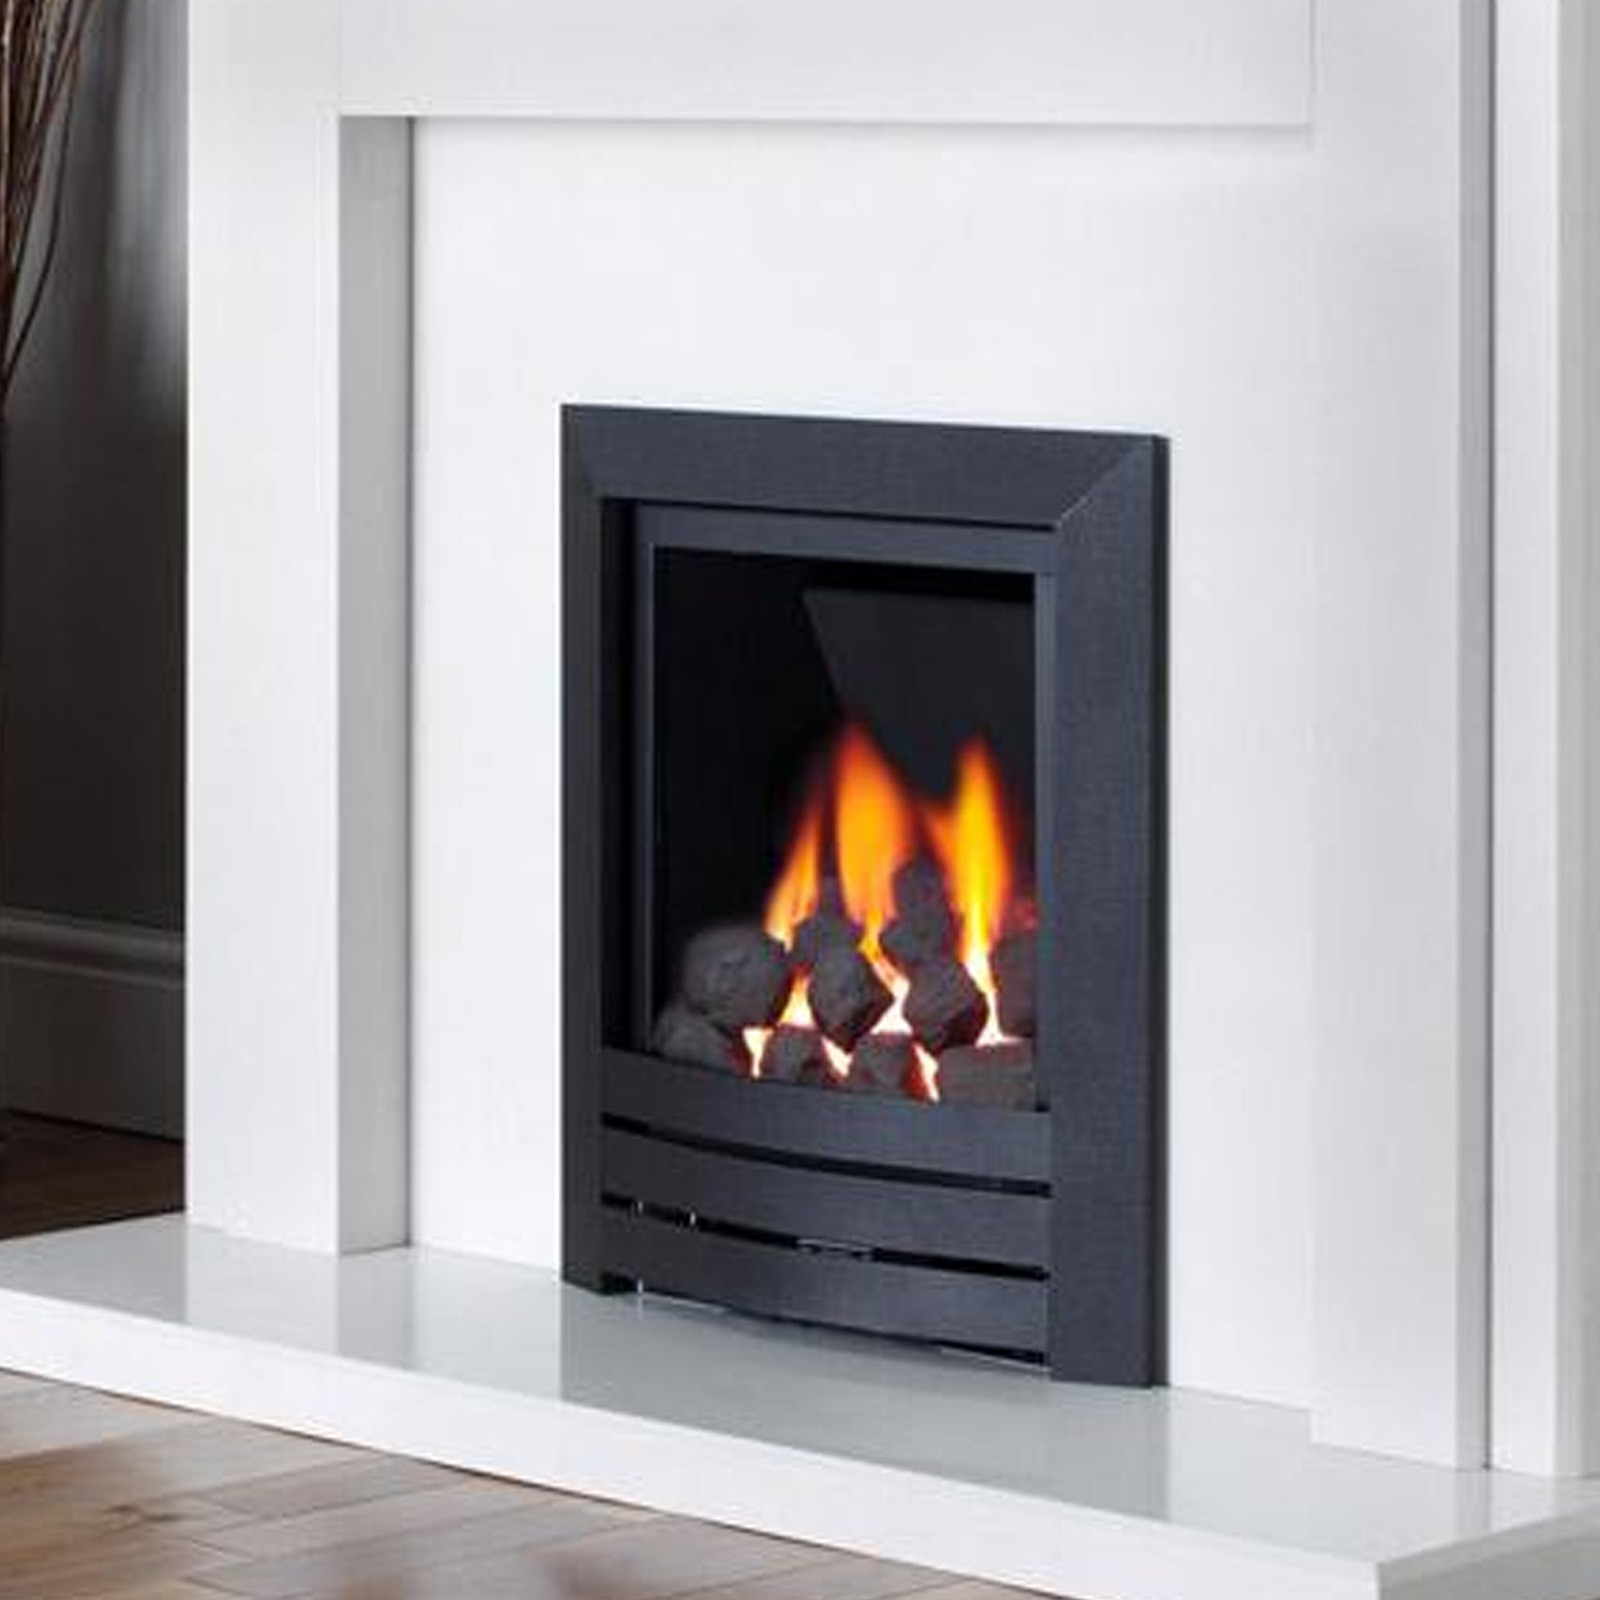 Gas Fireplace Costs 28 Images Miscellaneous Truly Cost Of Gas Fireplace Cost Of Gas 28 Gas